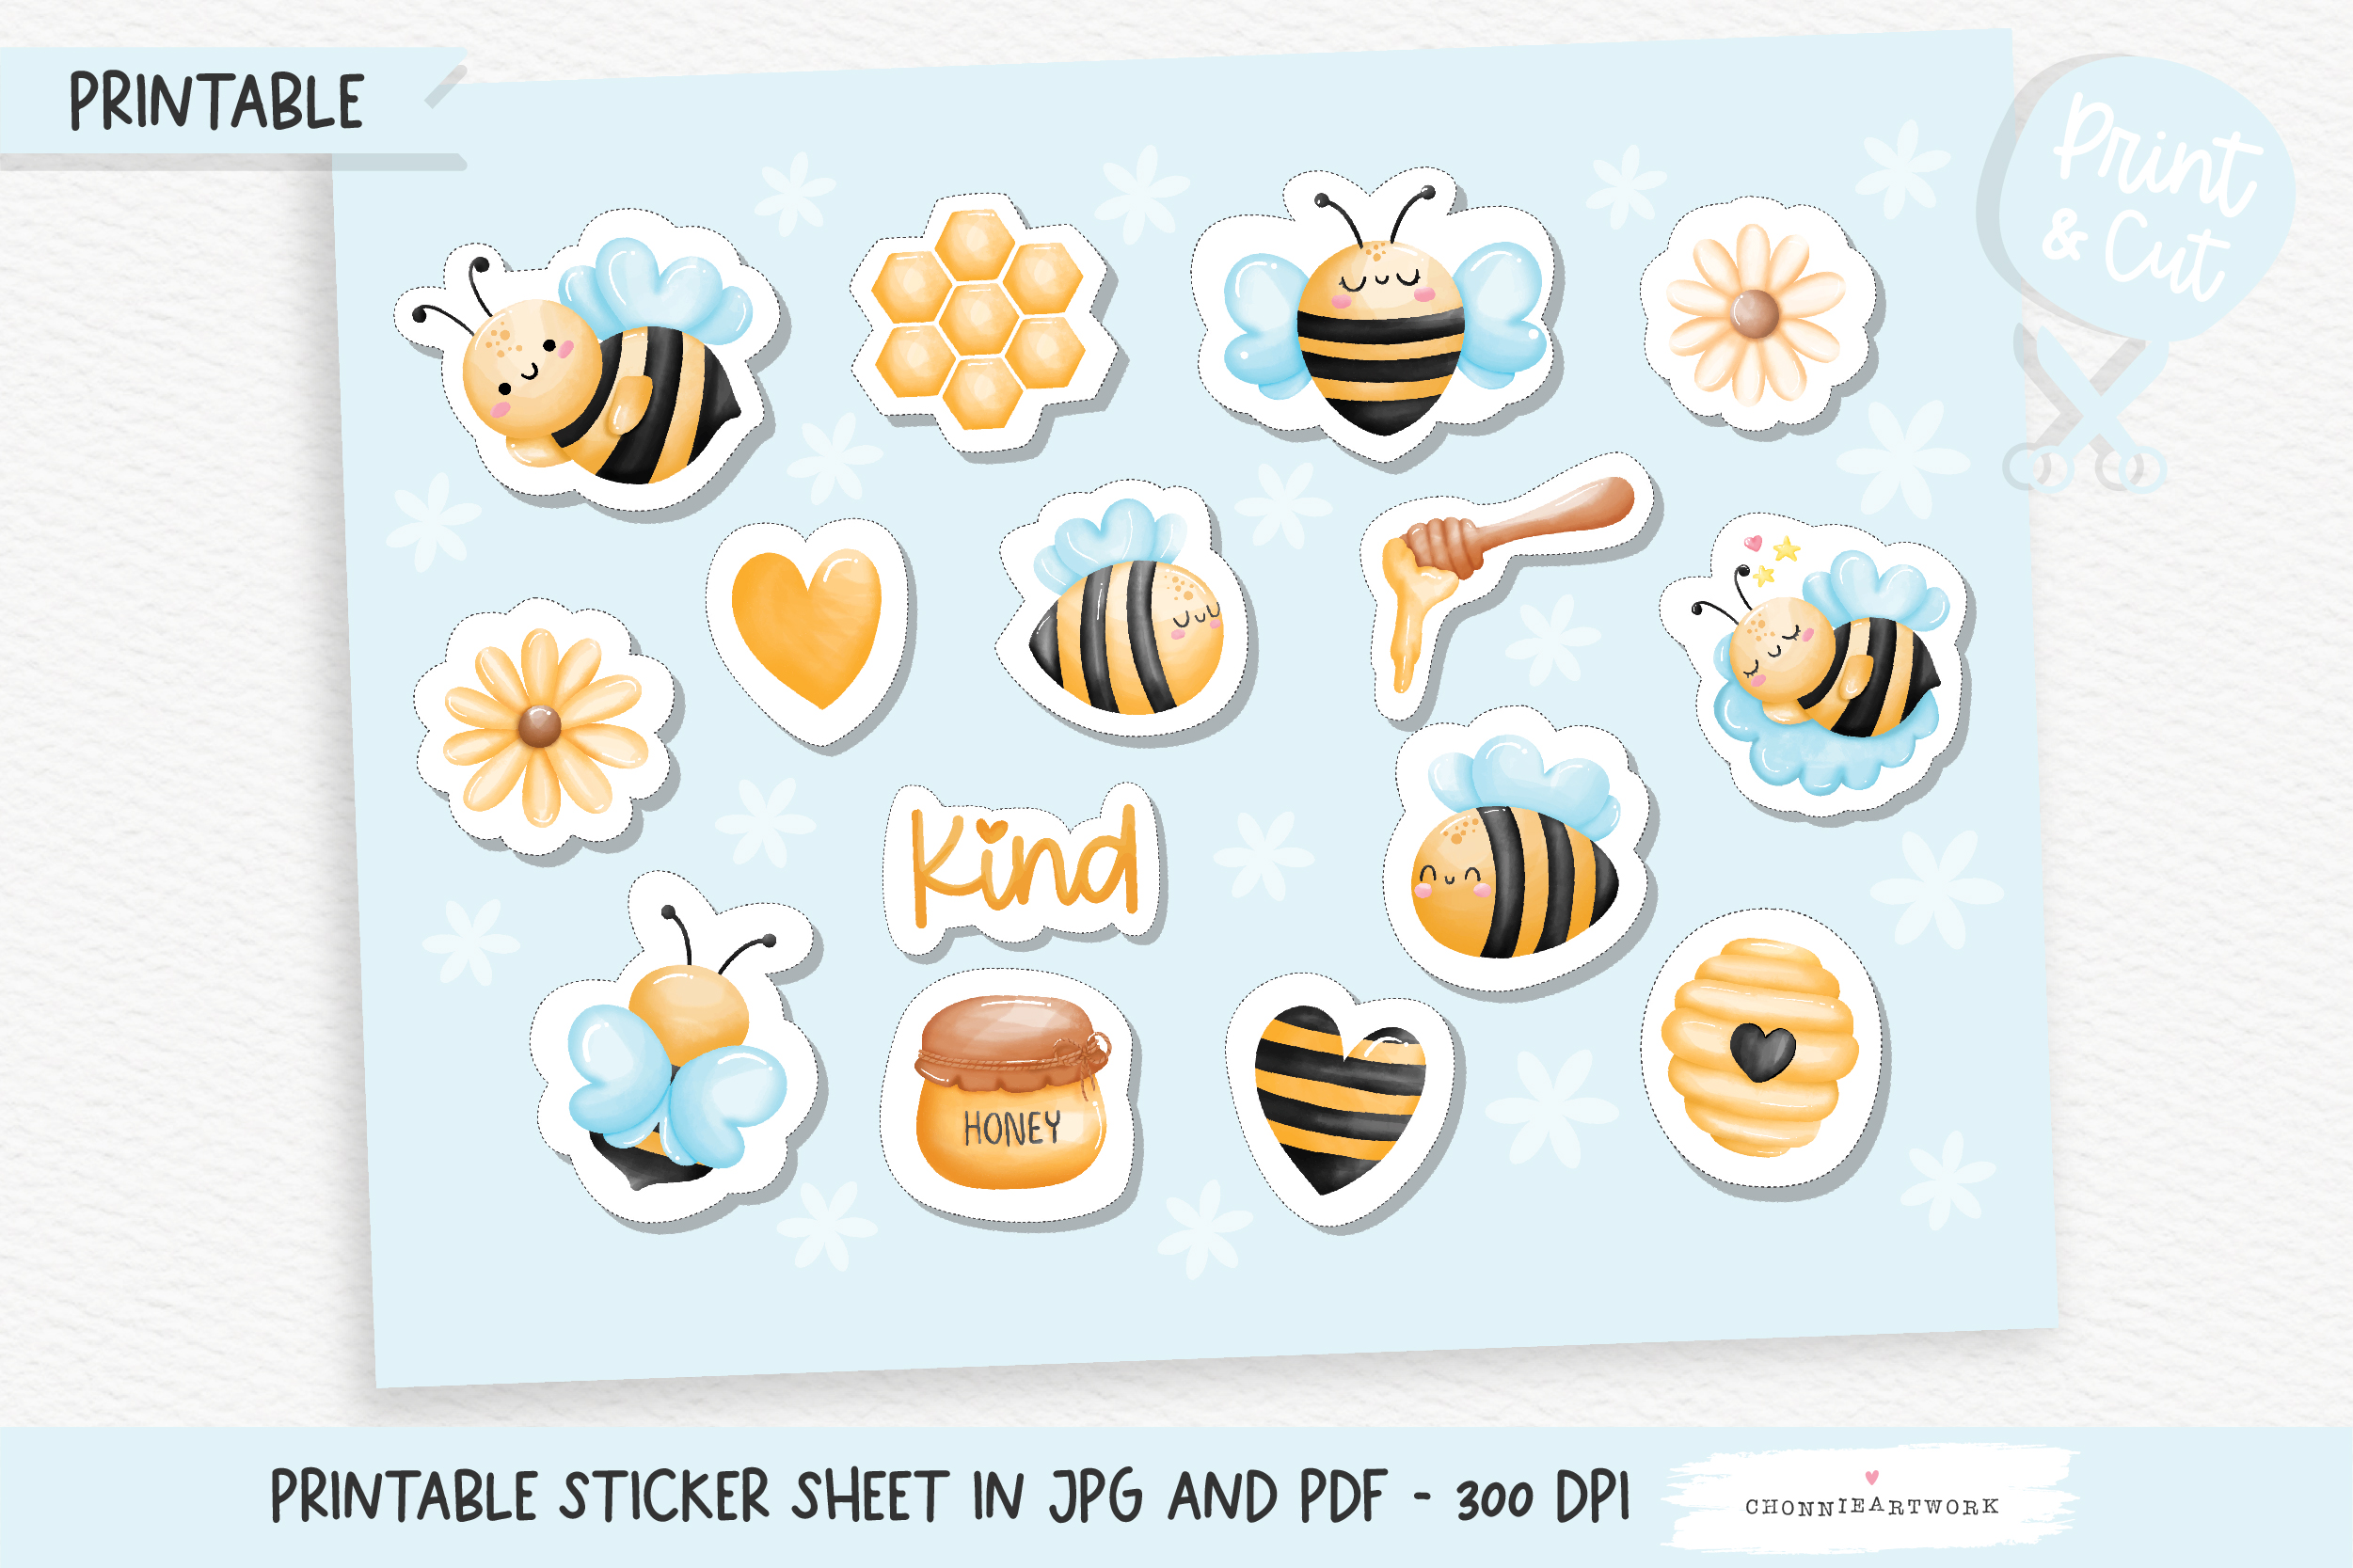 Honey Bee Printable Stickers, Planner SVG File